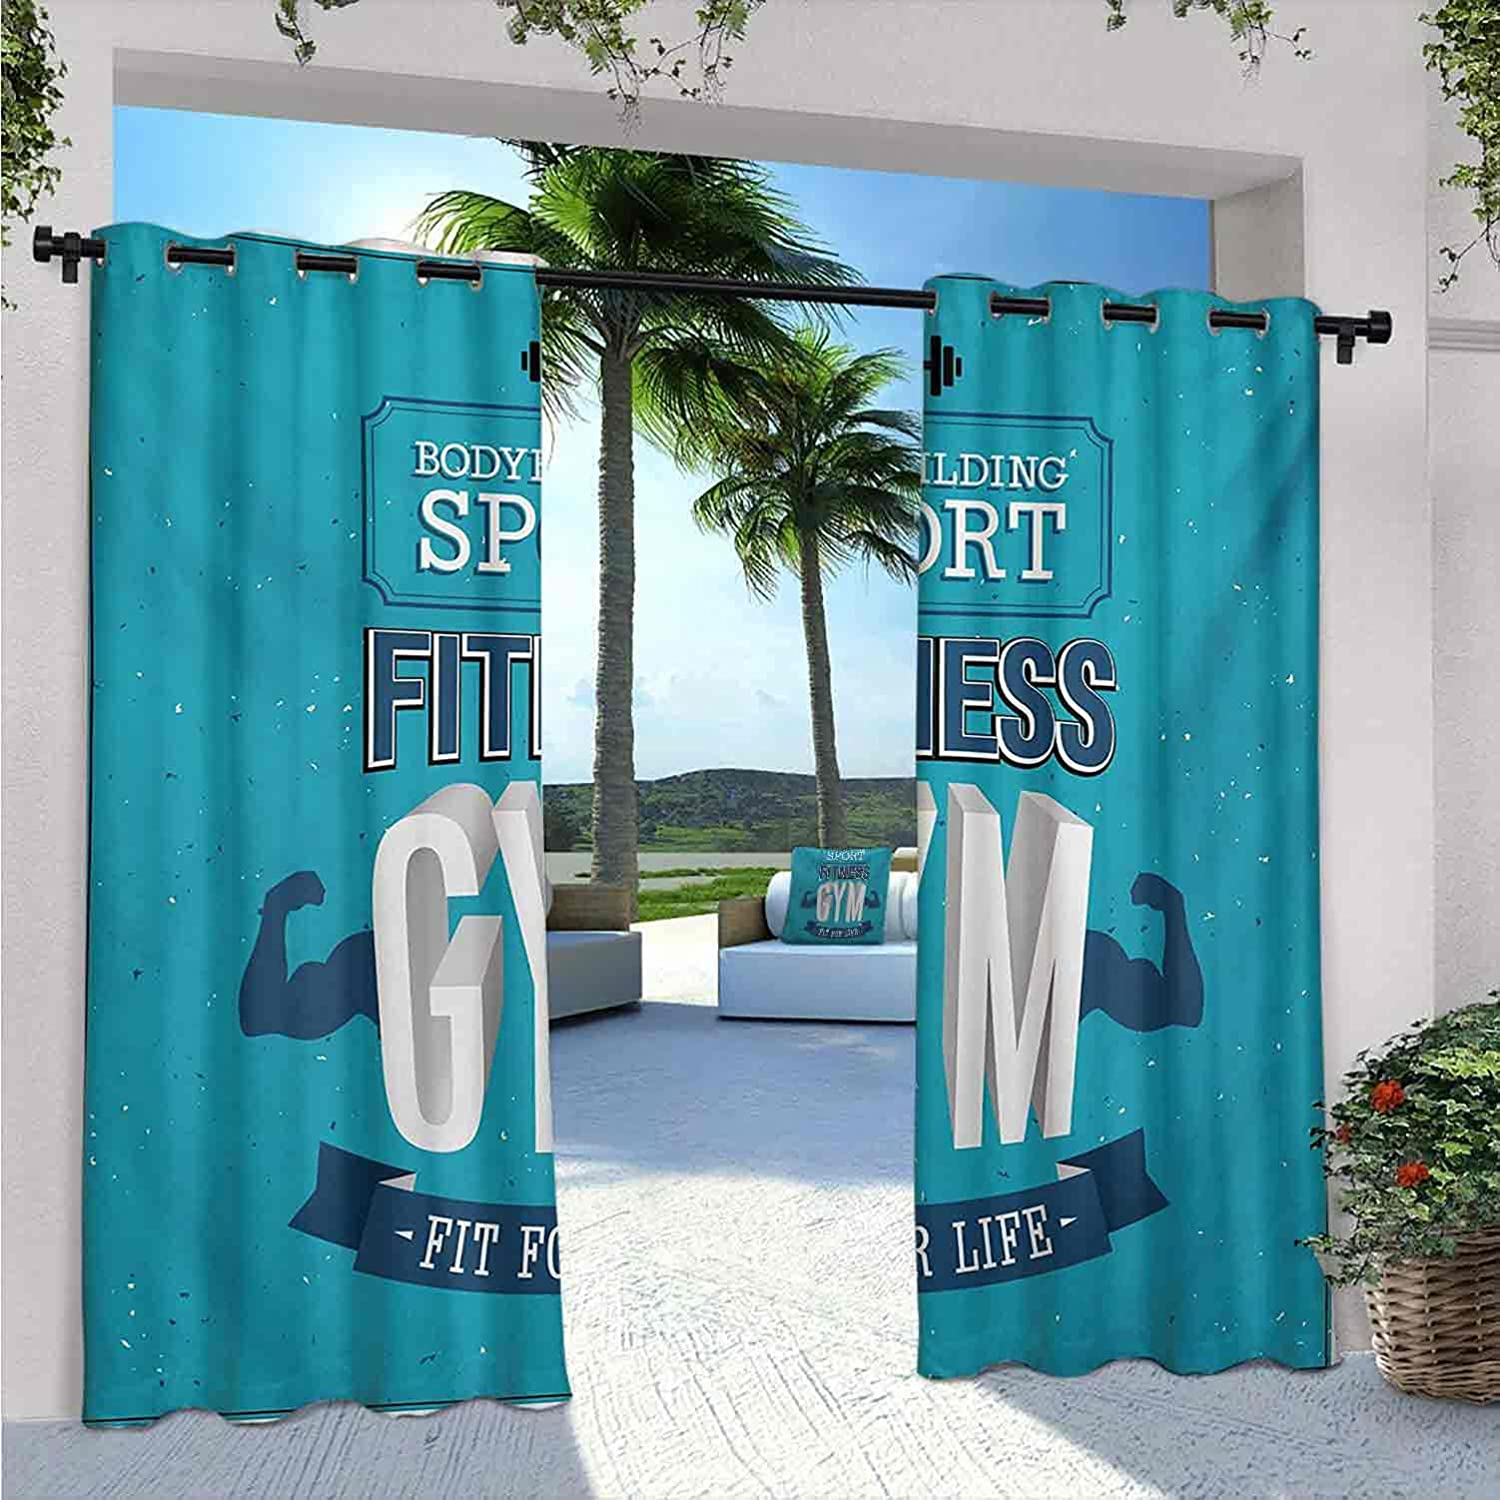 Fitness Outdoor Curtains for Patio Fit Body Life Waterproof Max 48% Ranking TOP19 OFF